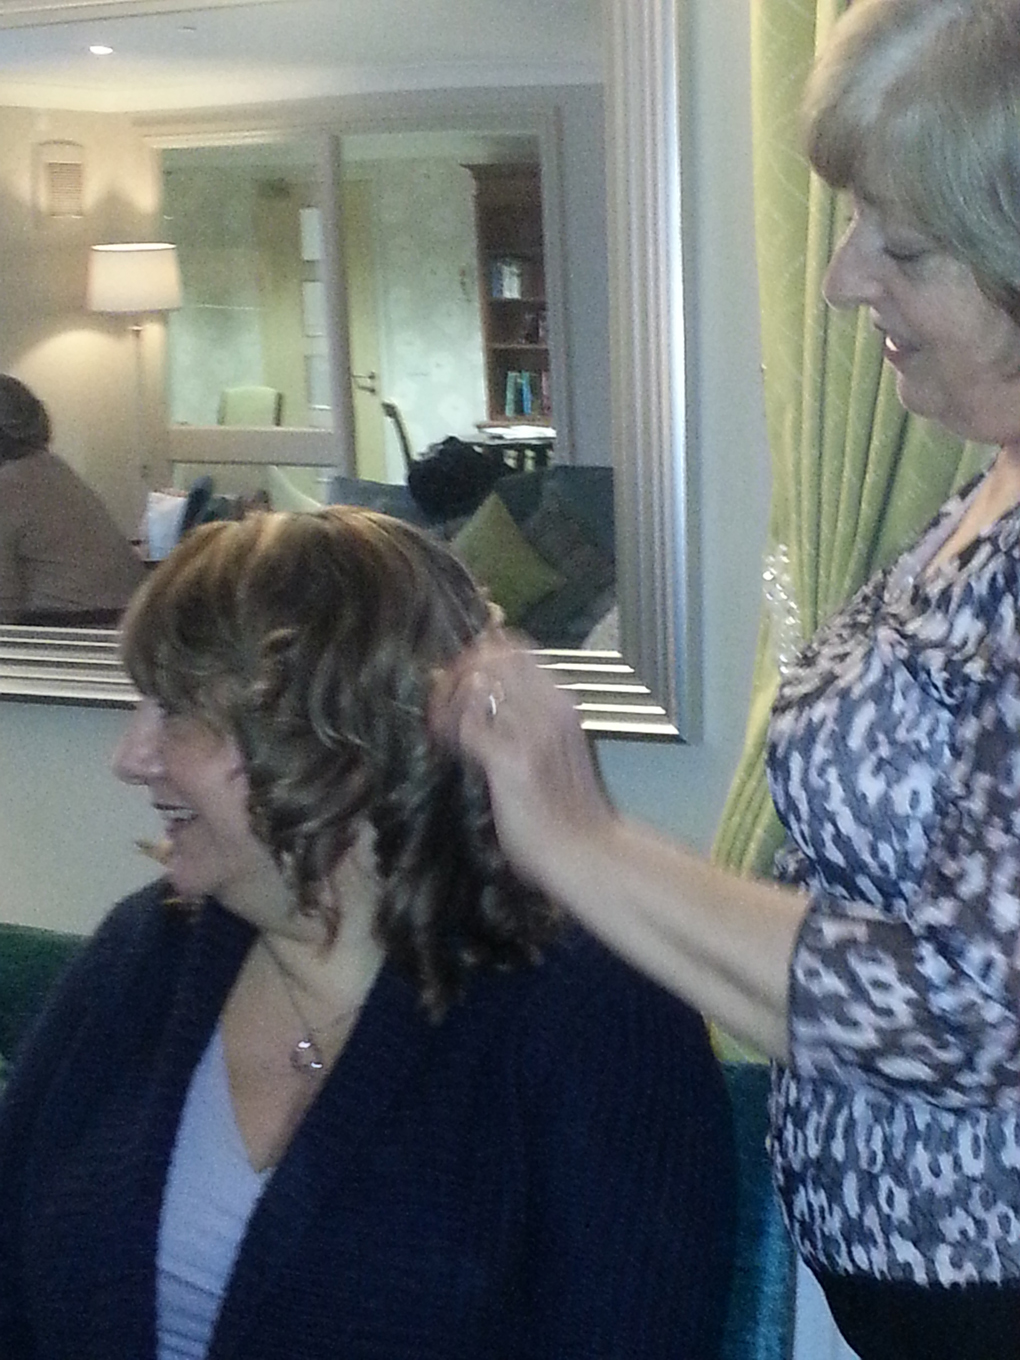 Hairdresser at well-being event